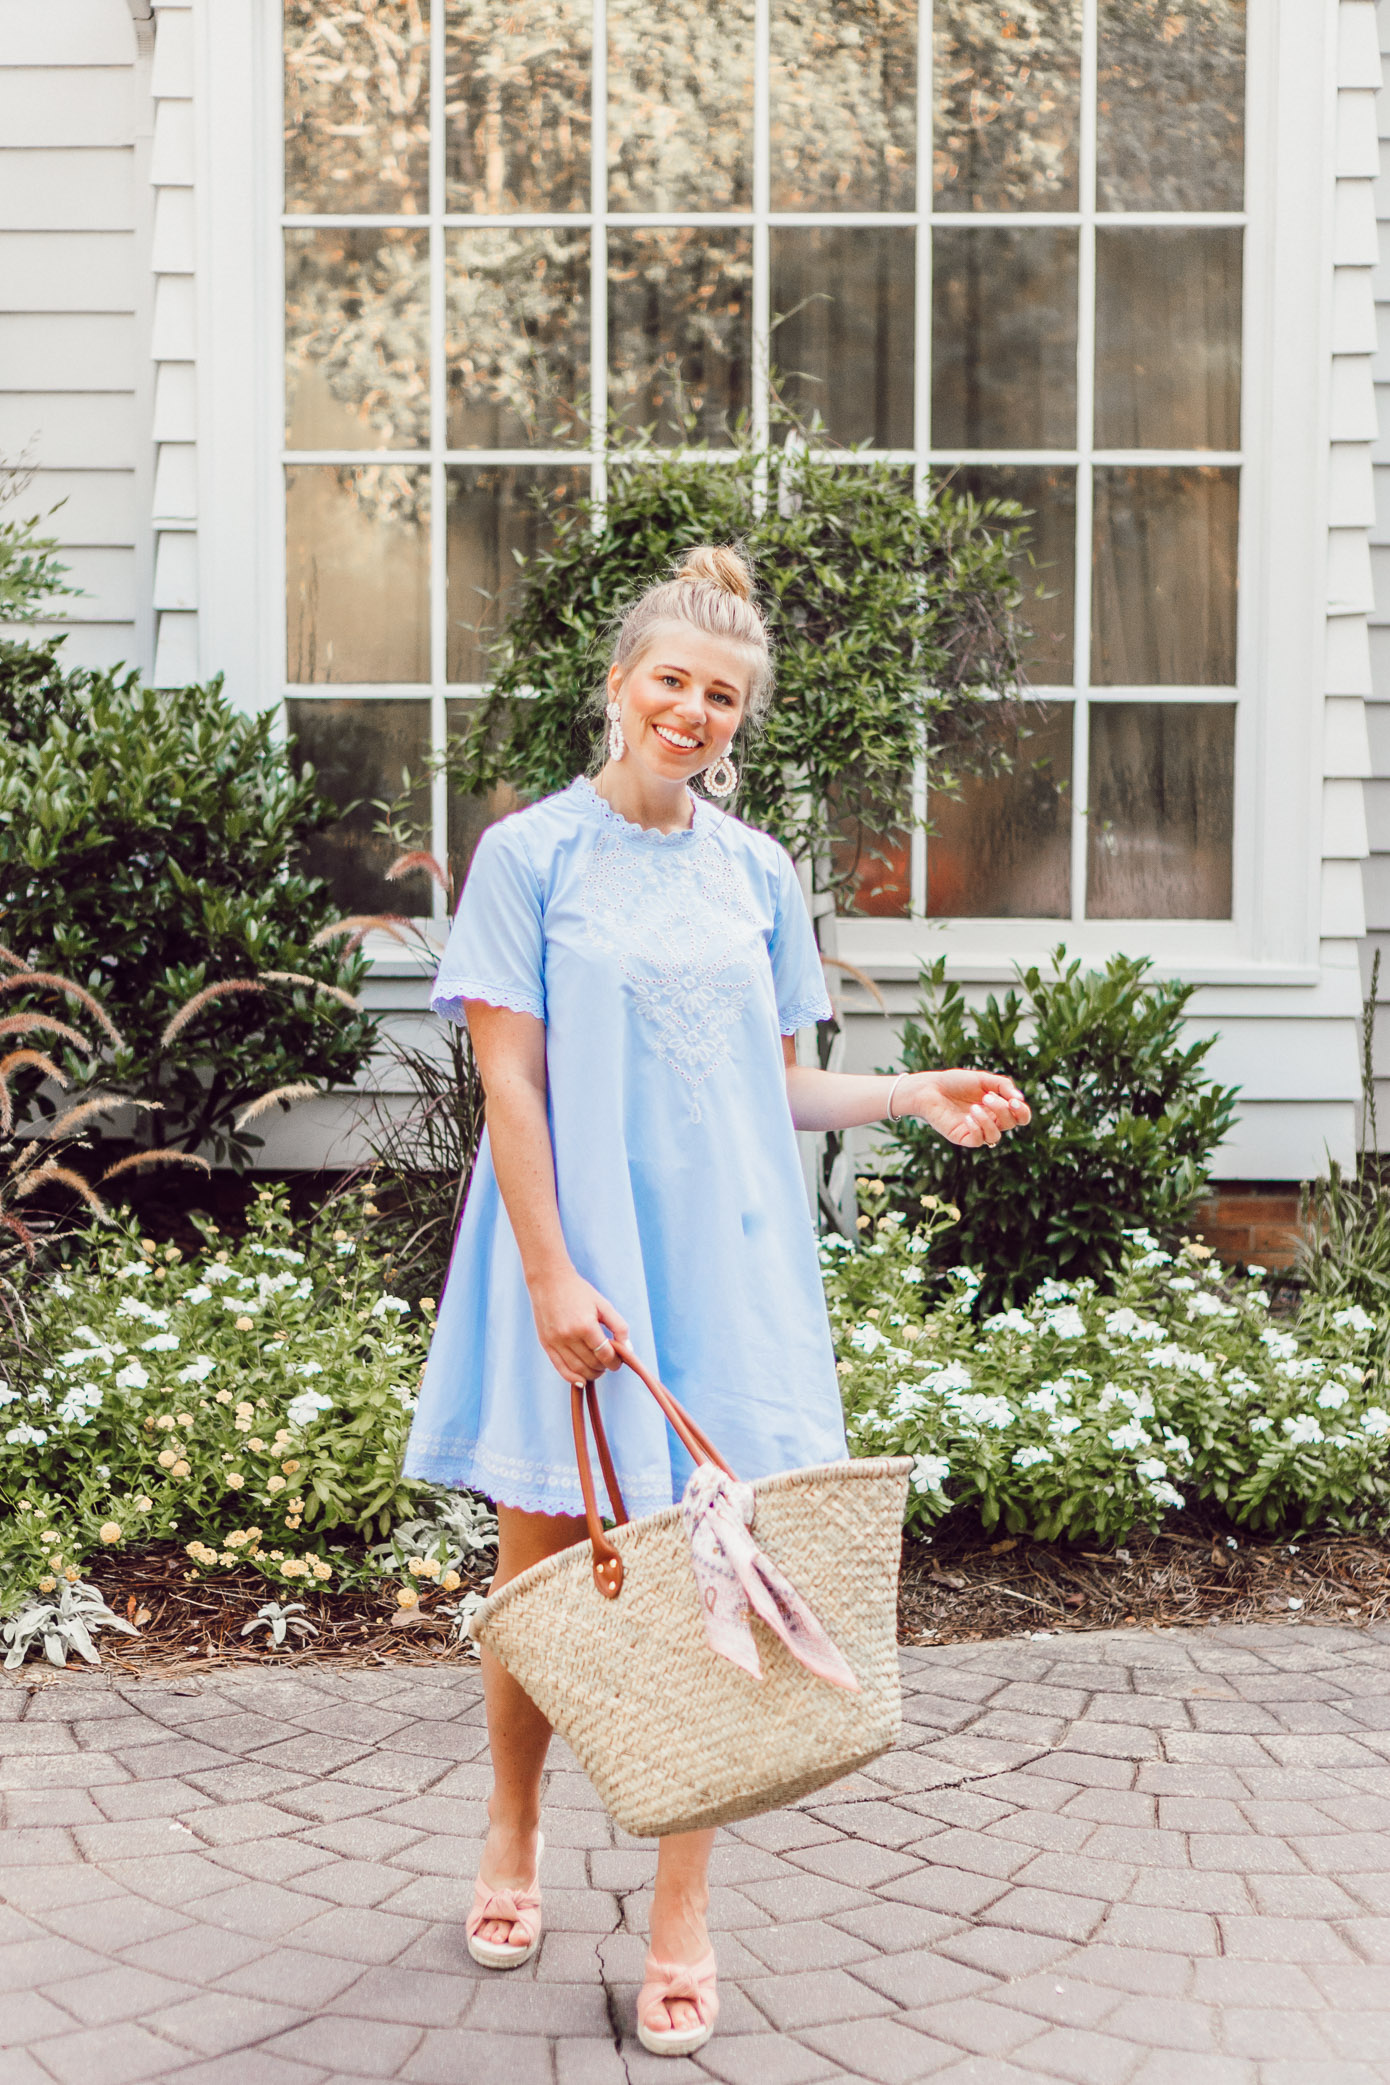 Blue Swing Dress and Straw Tote Bag | The Morehead Inn Charlotte NC Bed & Breakfast featured on Louella Reese Life & Style Blog